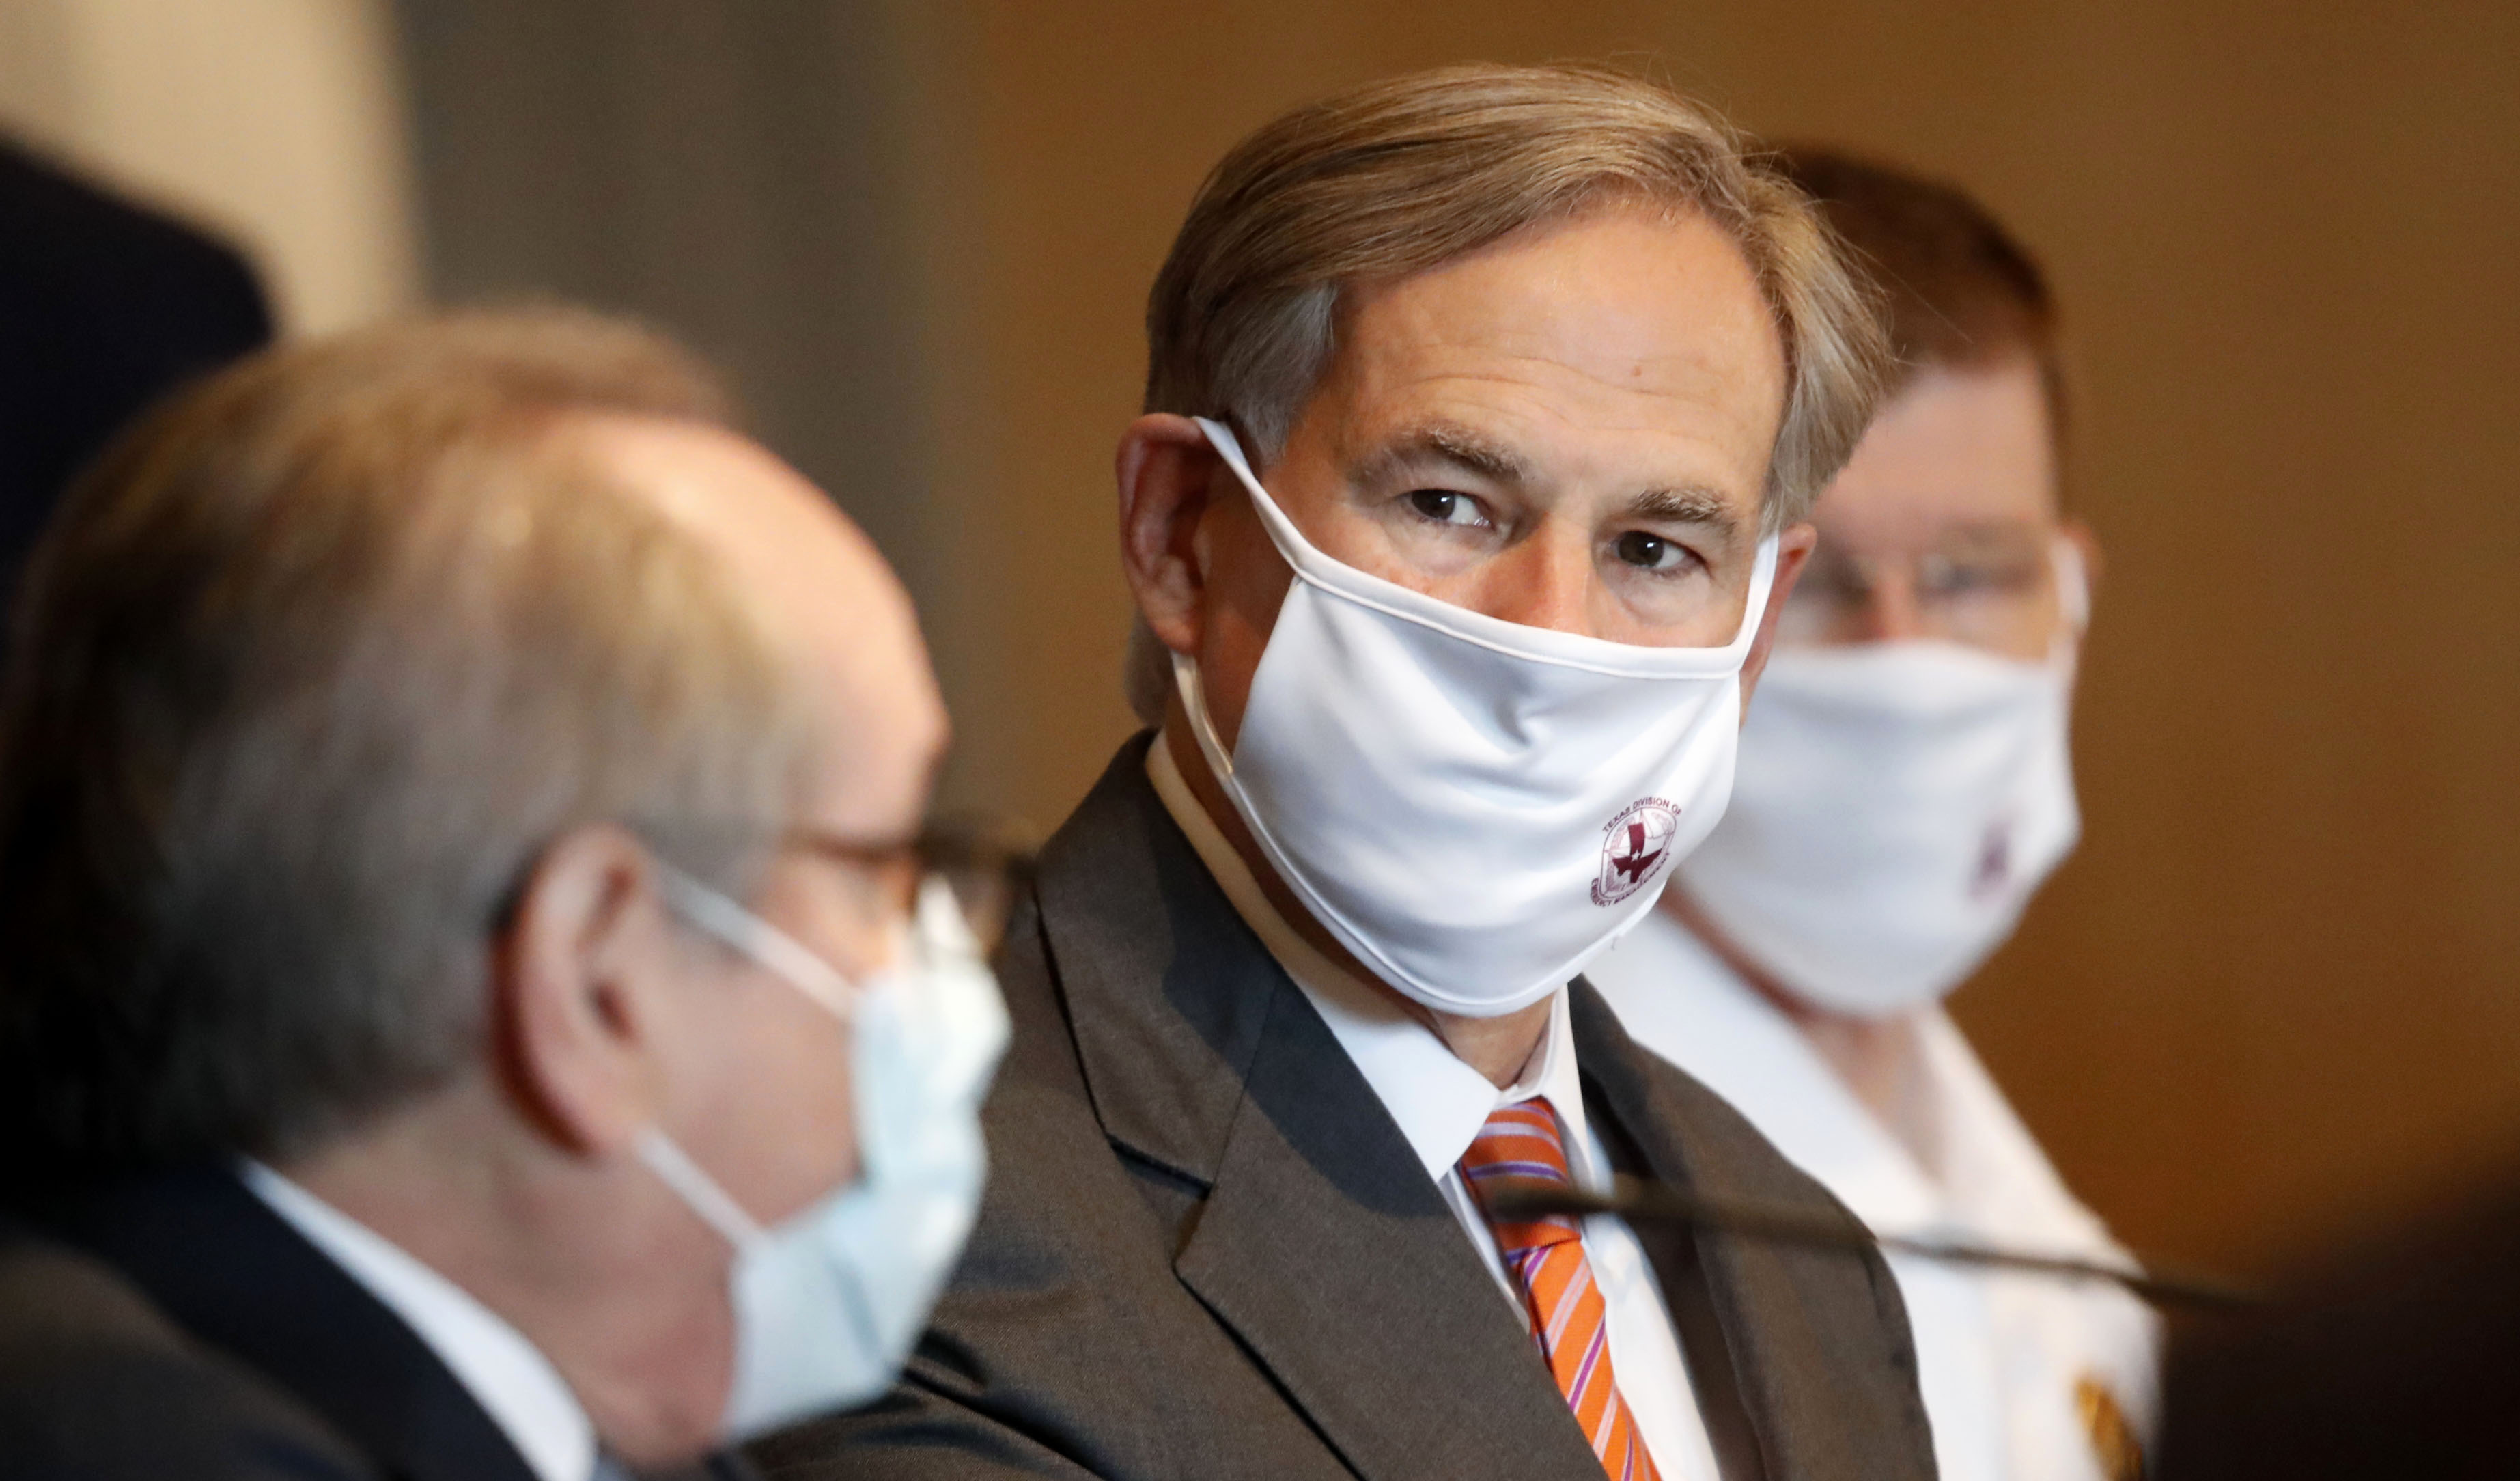 Texas Gov. Greg Abbott, center, listens to Dr. Daniel Podolsky on August 6 during a news conference in Dallas.